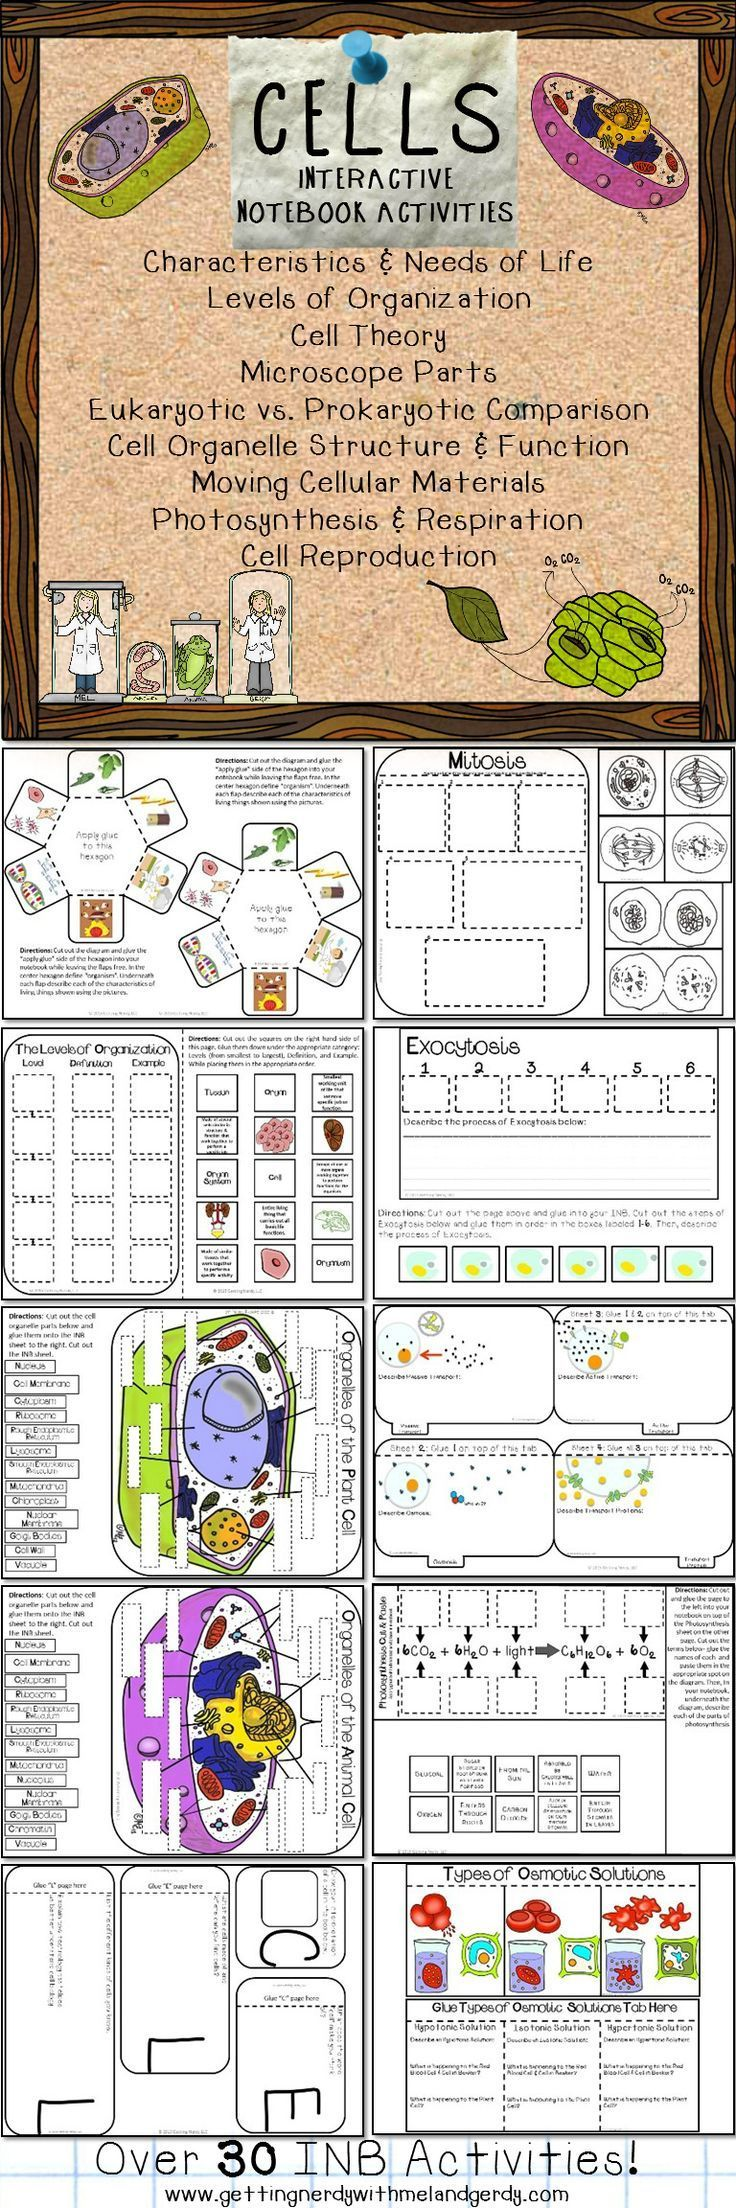 Over 30 interactive science notebook activities for cells! Characteristics and needs of life, levels of organization, cell theory, microscope parts, Robert Hooke, eukaryotic and prokaryotic cell comparison, cell organelle structure and function, osmotic s